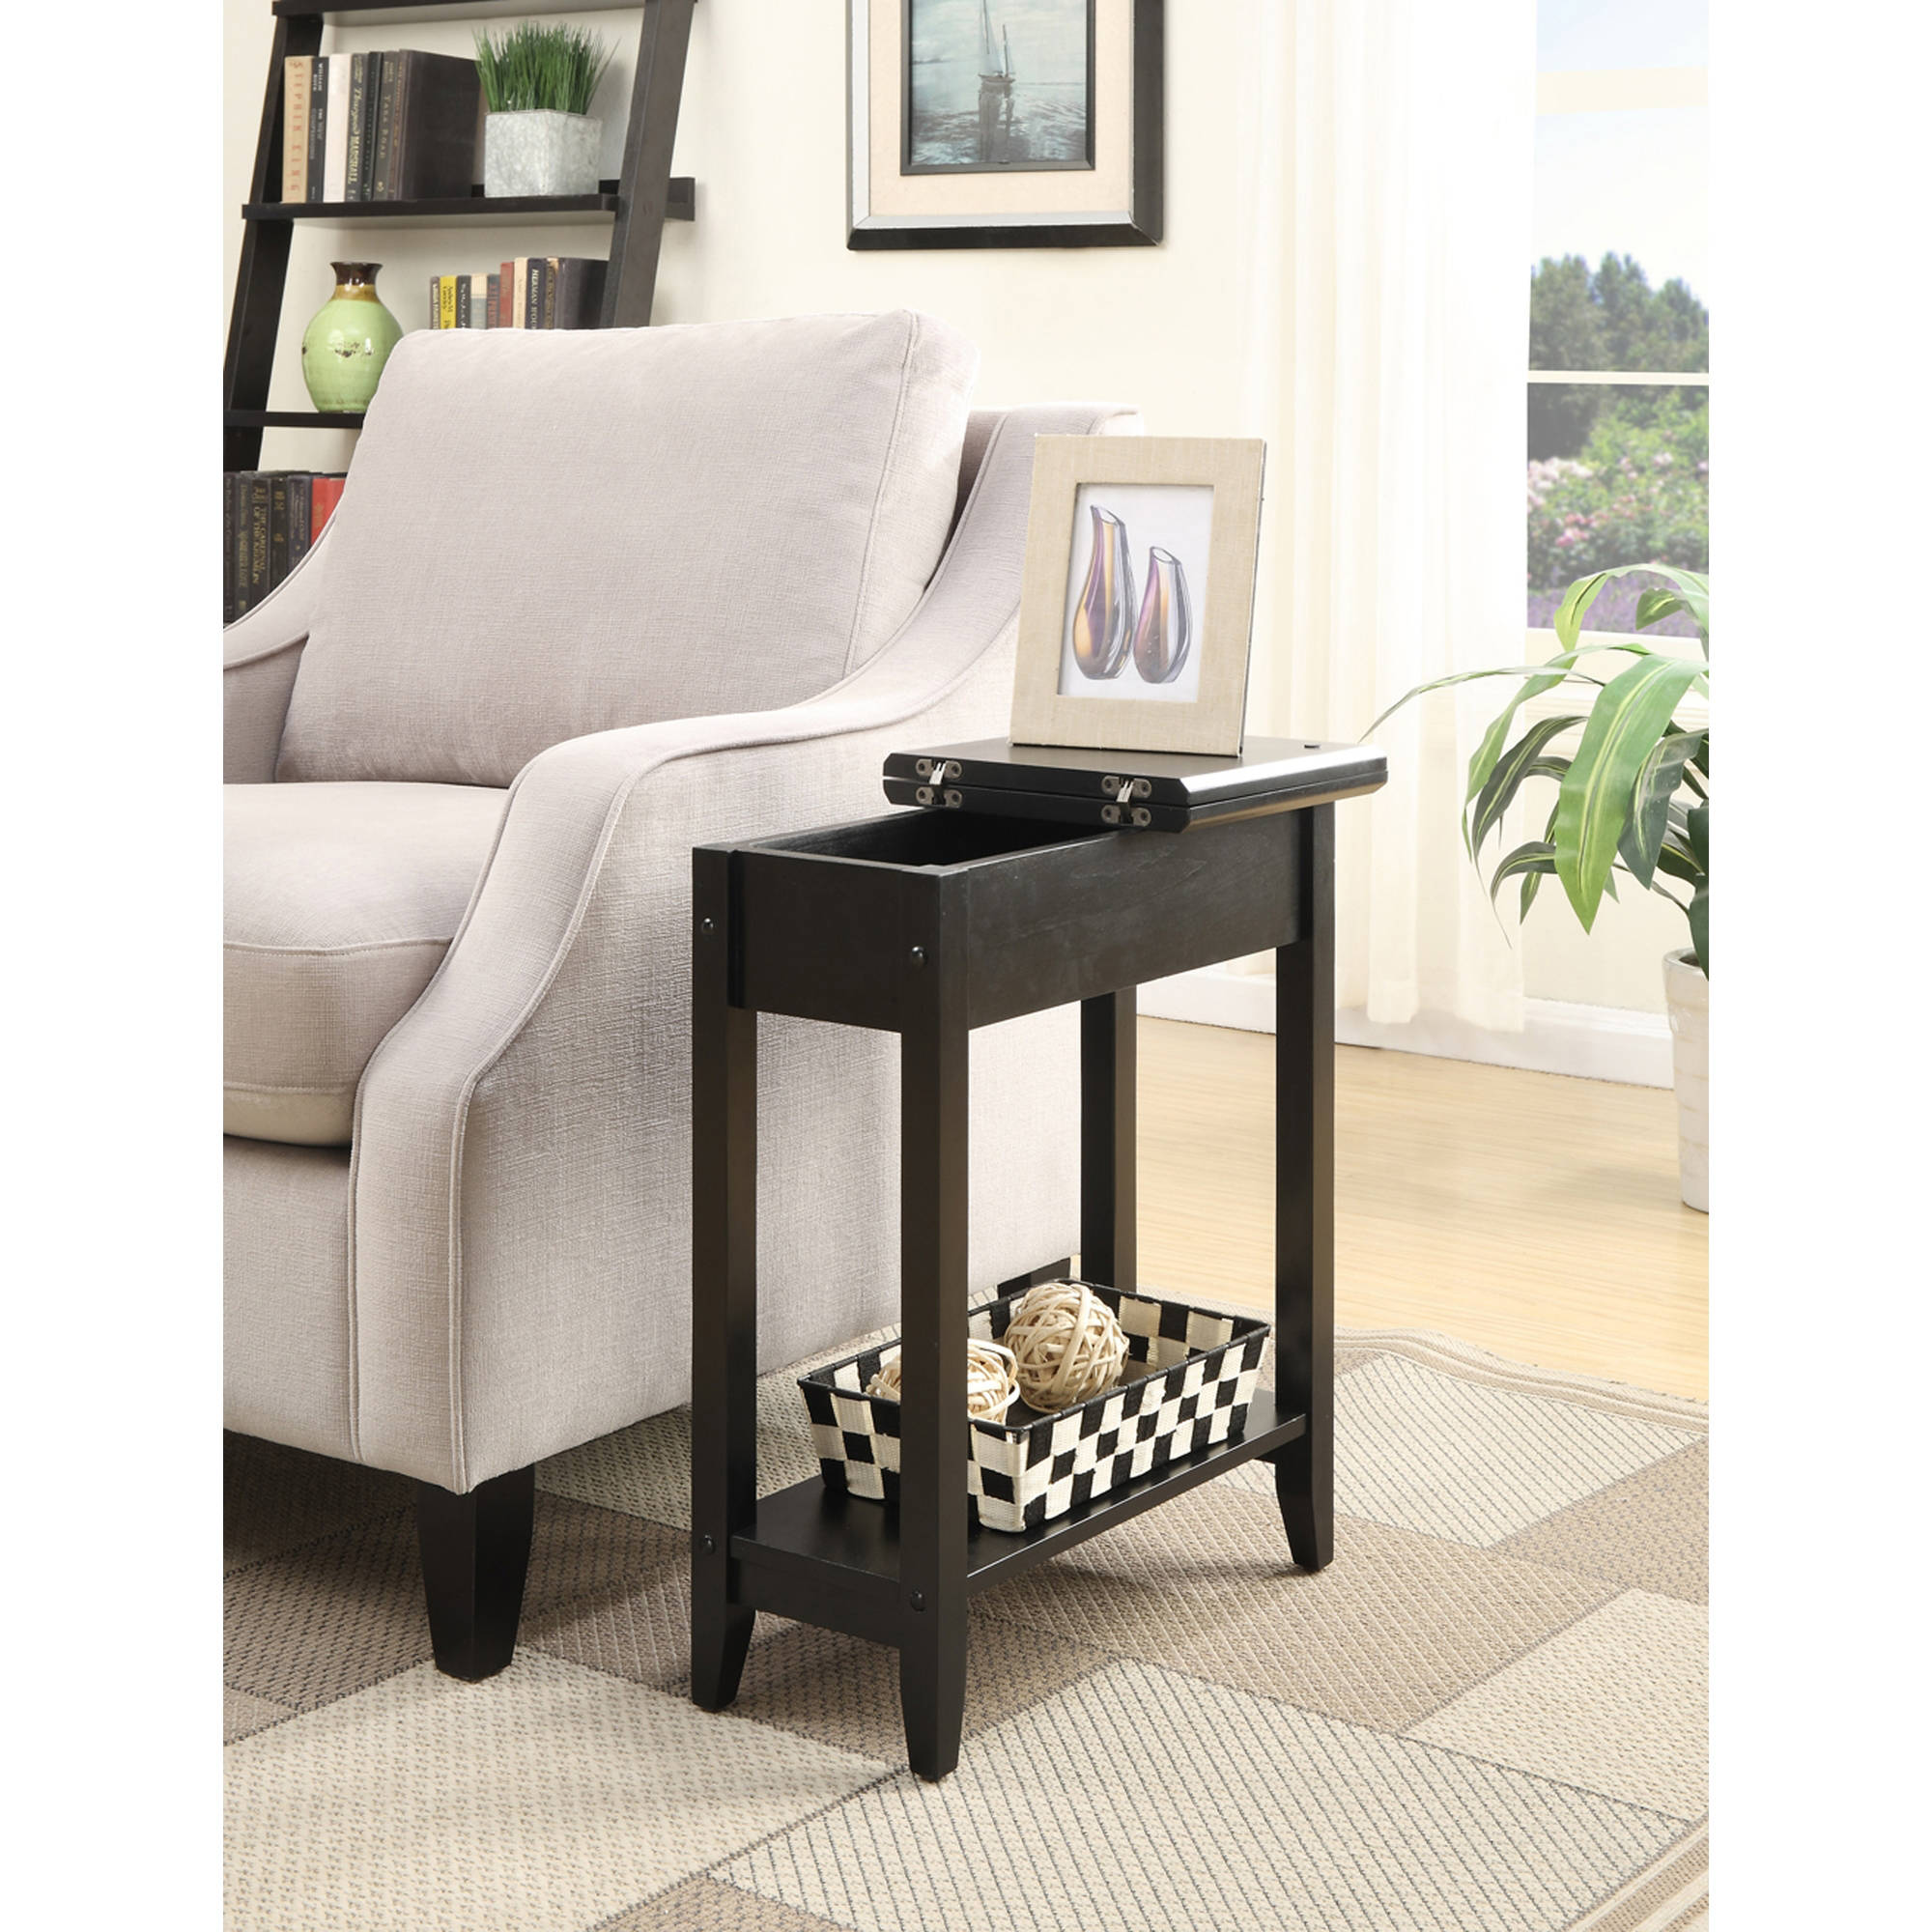 Flip top side table - Image Is Loading American Heritage Flip Top Tall Side Table Multiple